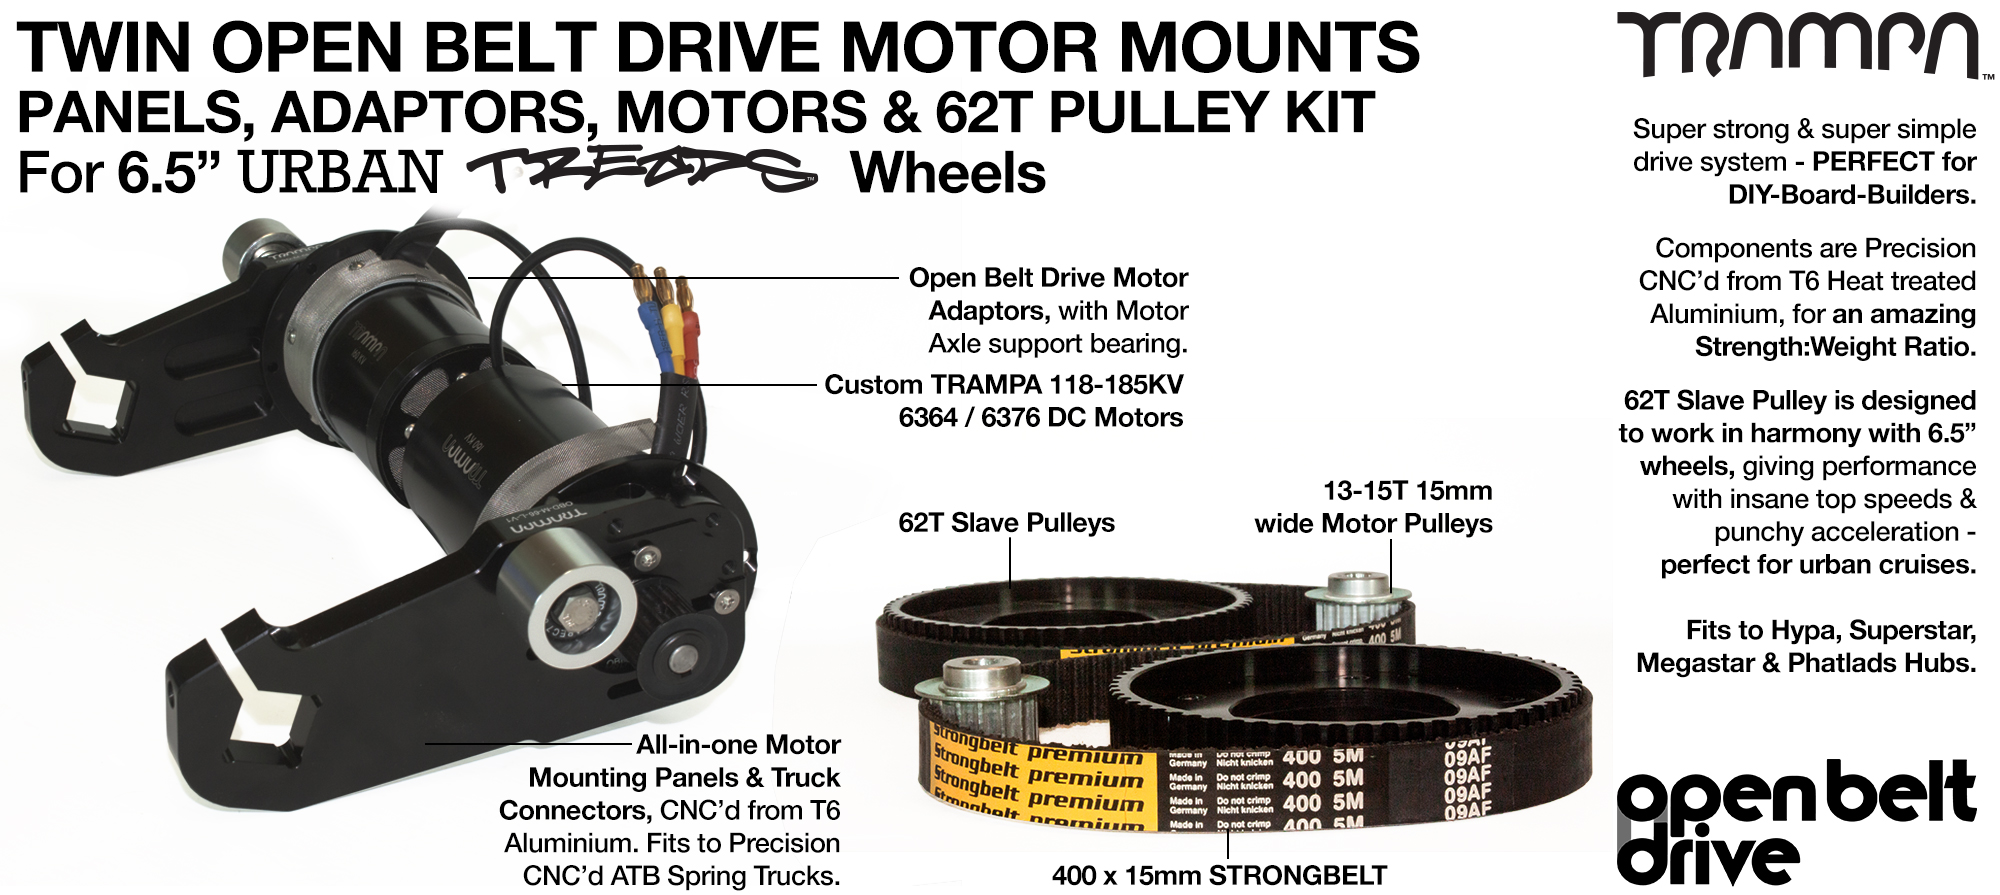 66T OBD Motor Mount with 62T Pulley kit & custom Motor - TWIN